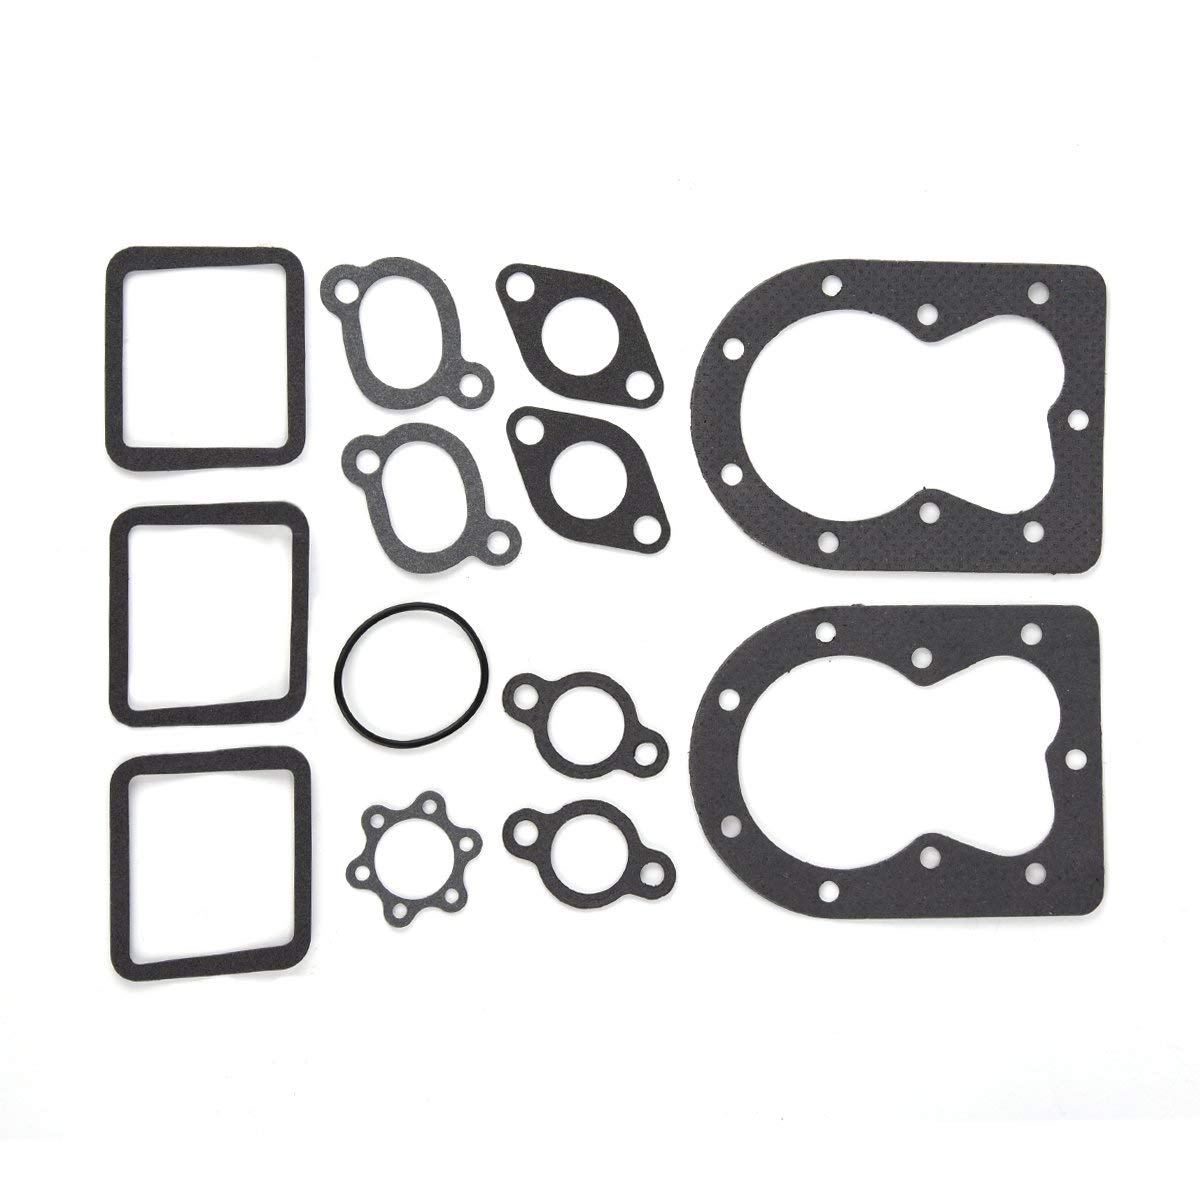 Motorcycle Valve Grind Head Gasket Kit For Onan Bf B43m B48m P216g P218g P220g Replaces